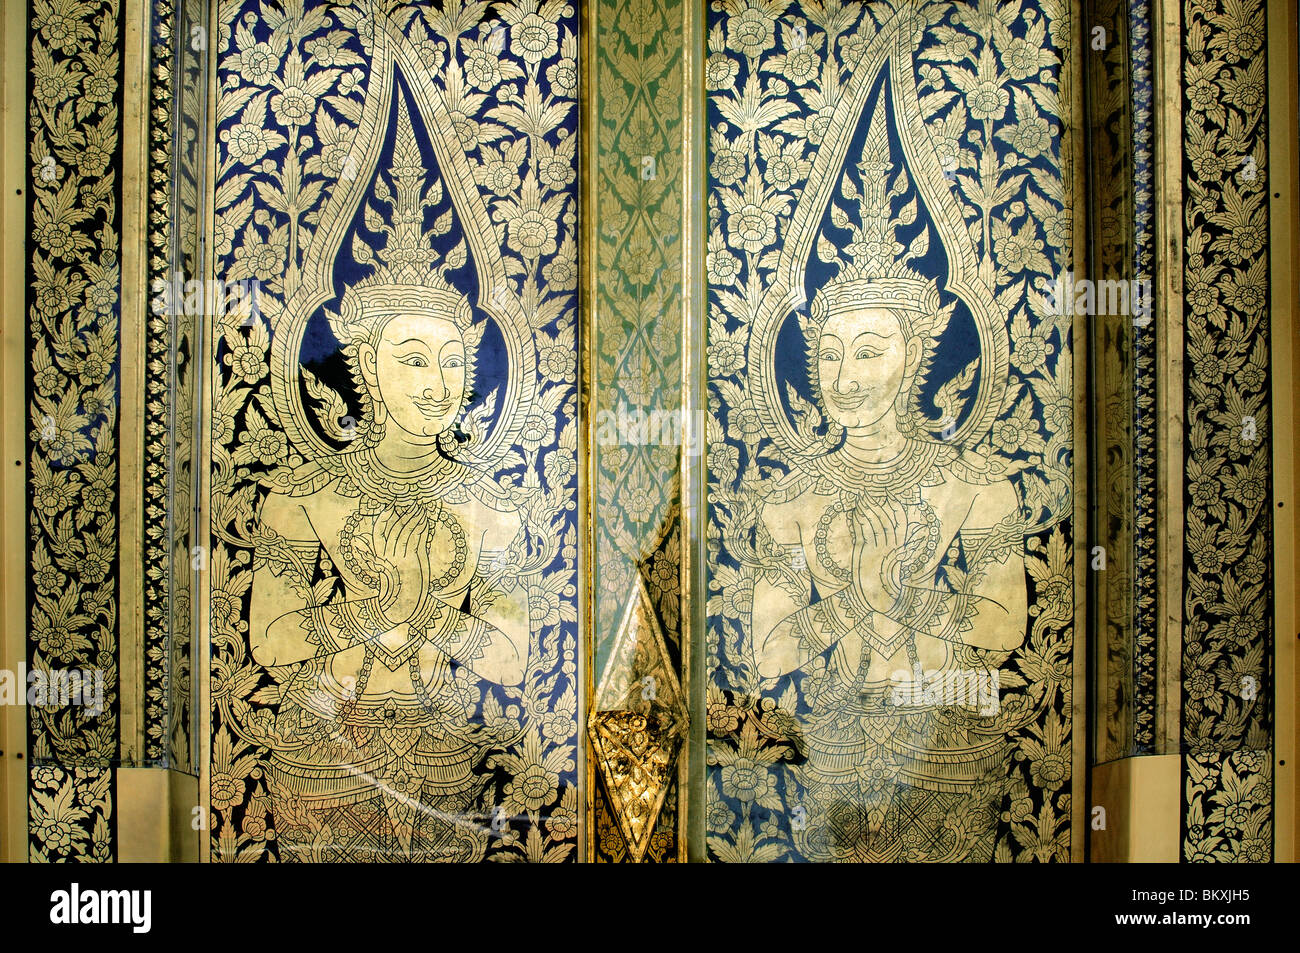 Decorative door panels with traditional Thai art at wat phra temple Bangkok ; Thailand ; South East Asia - Stock Image